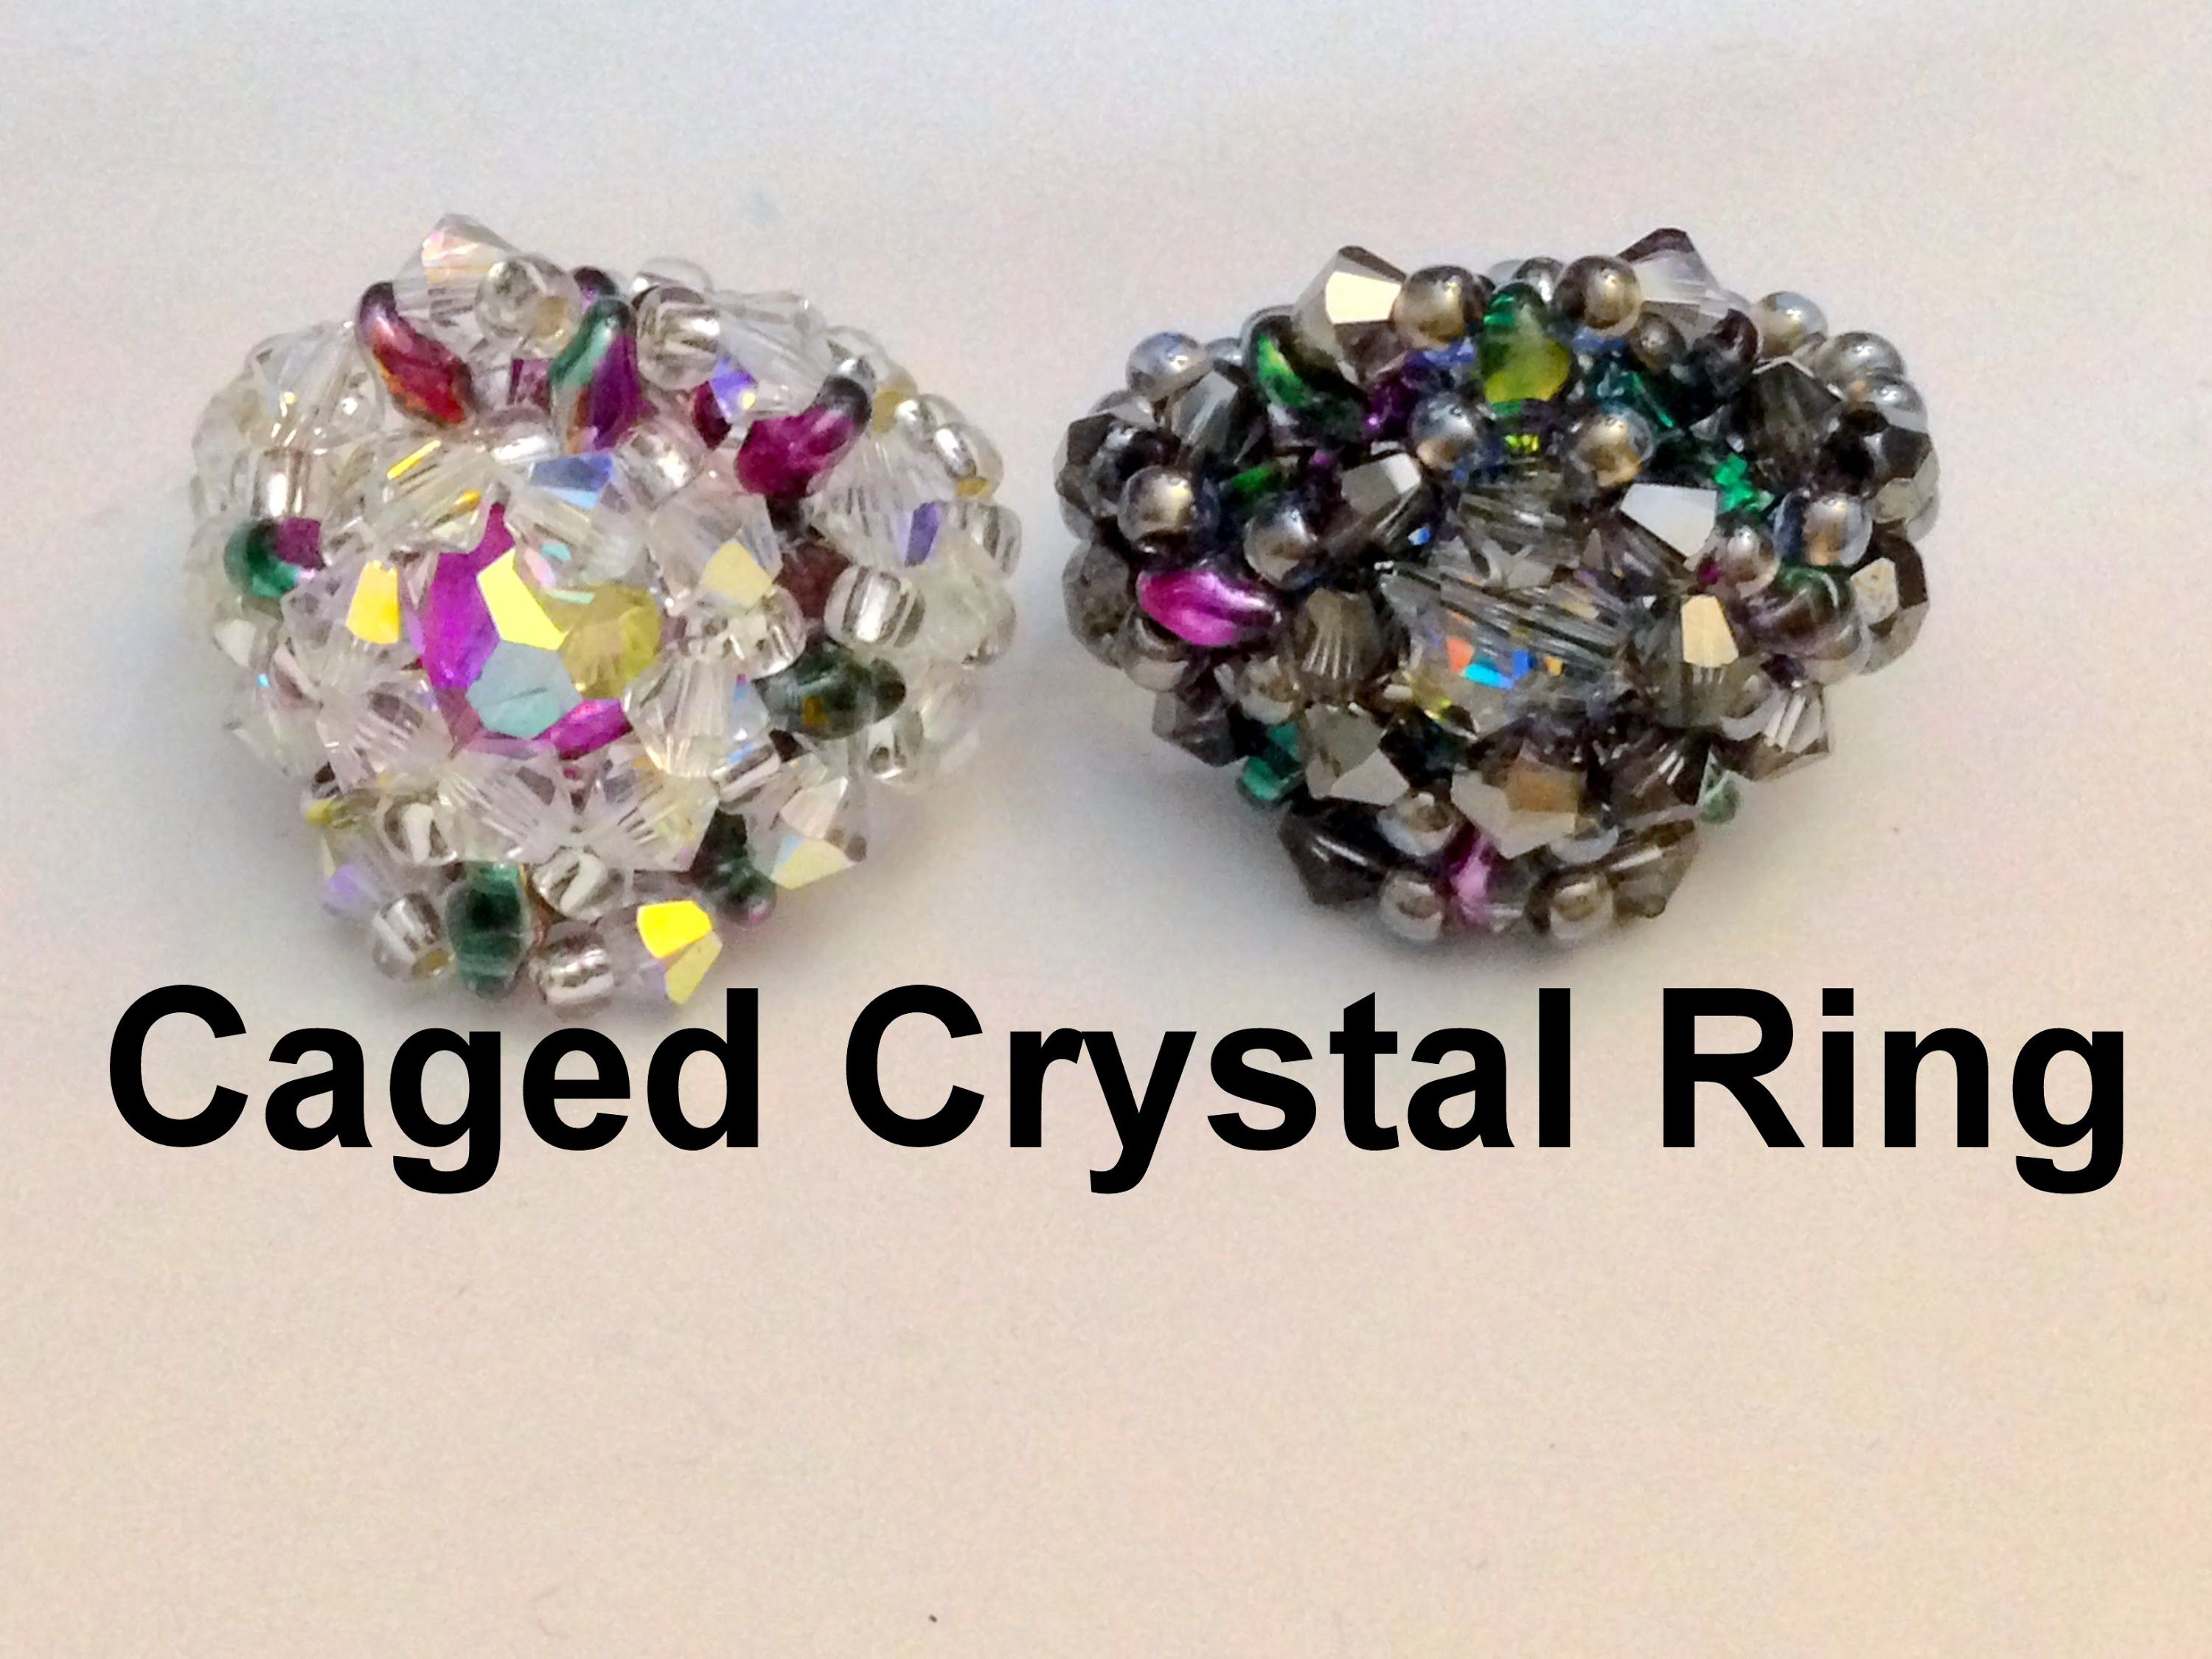 Caged Crystal Ring--intermediate level